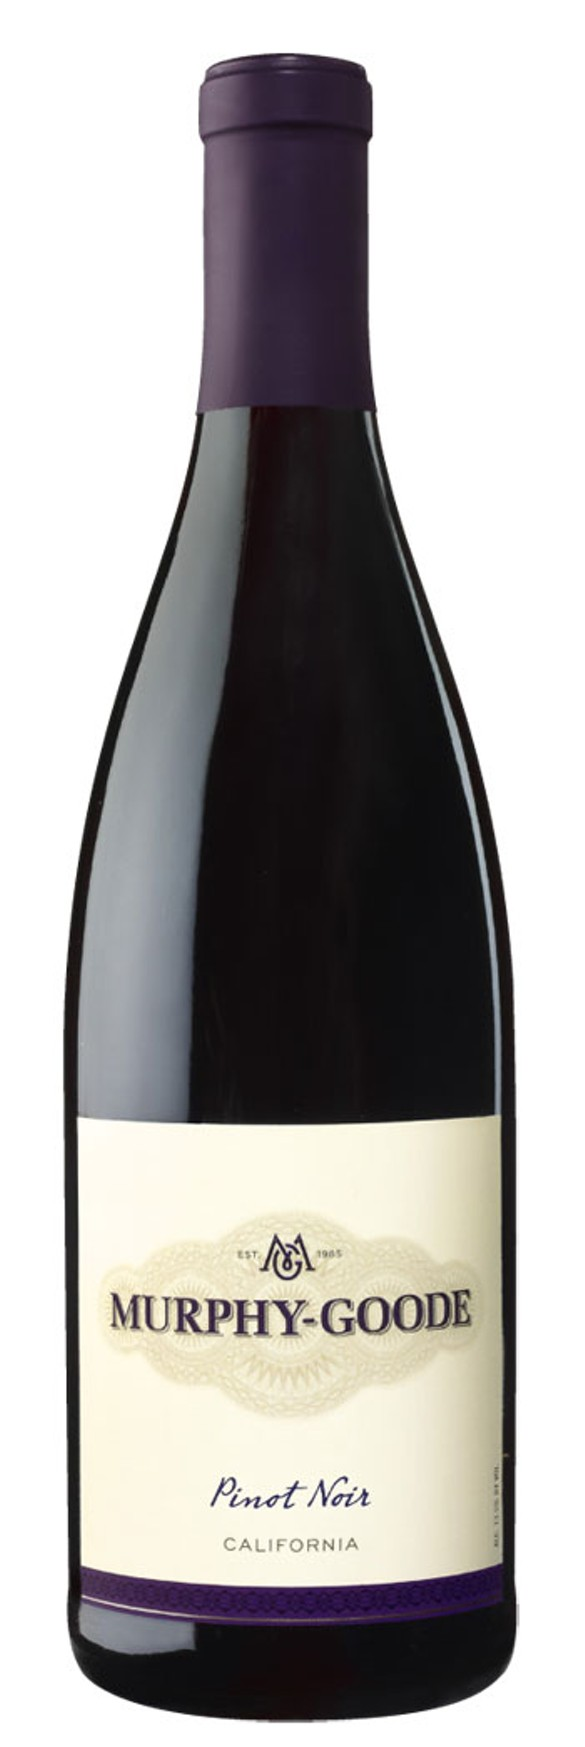 An Introduction to Pinot Noir Wines - thespruceeats.com